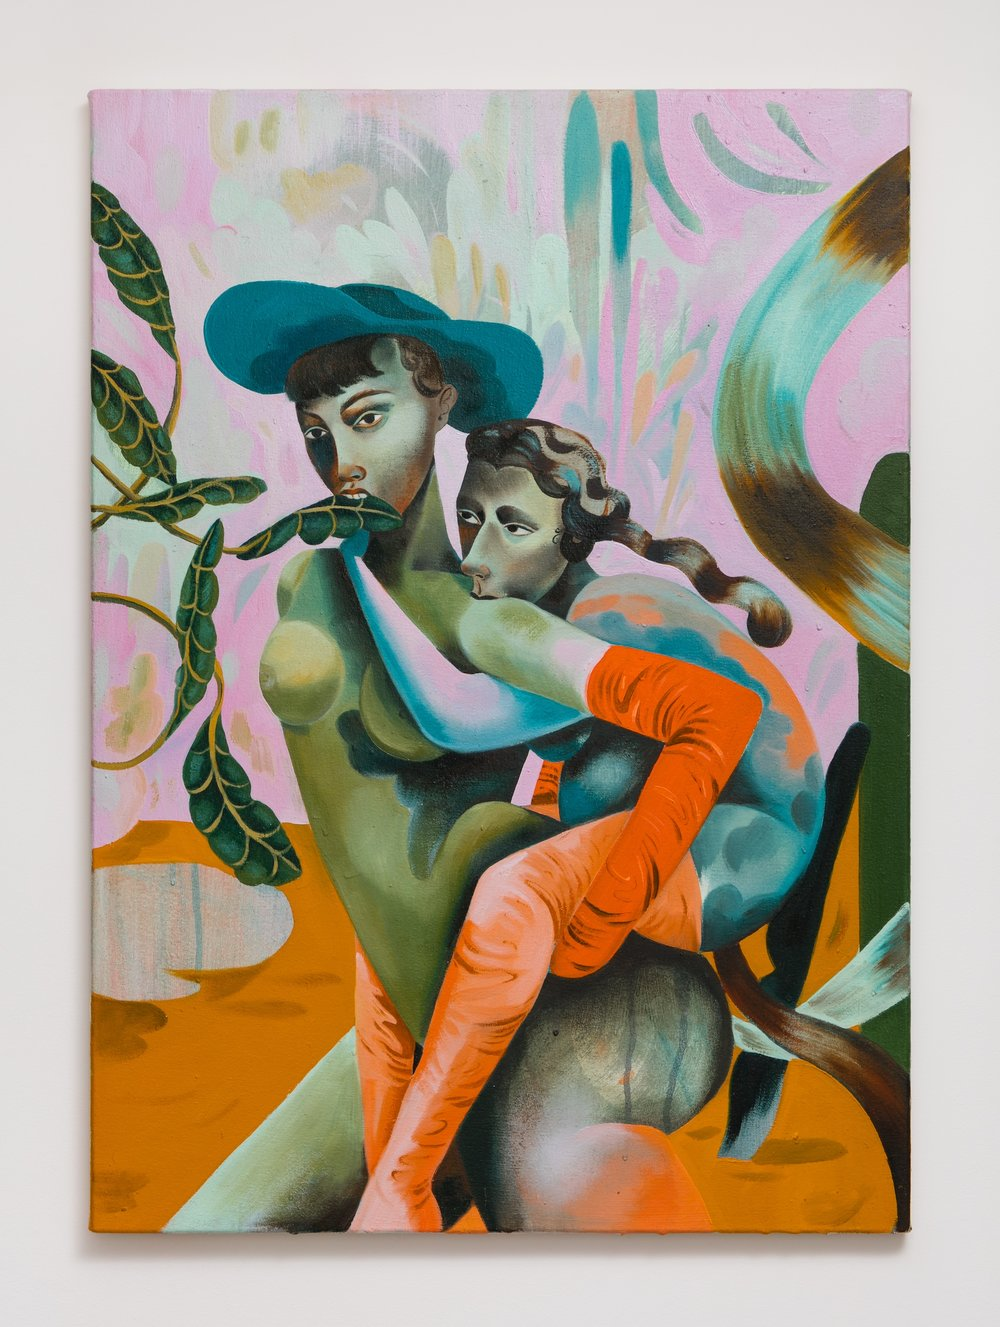 Jessie Makinson   She-dandies , 2018  Oil on canvas  27.5 x 22.875 inches